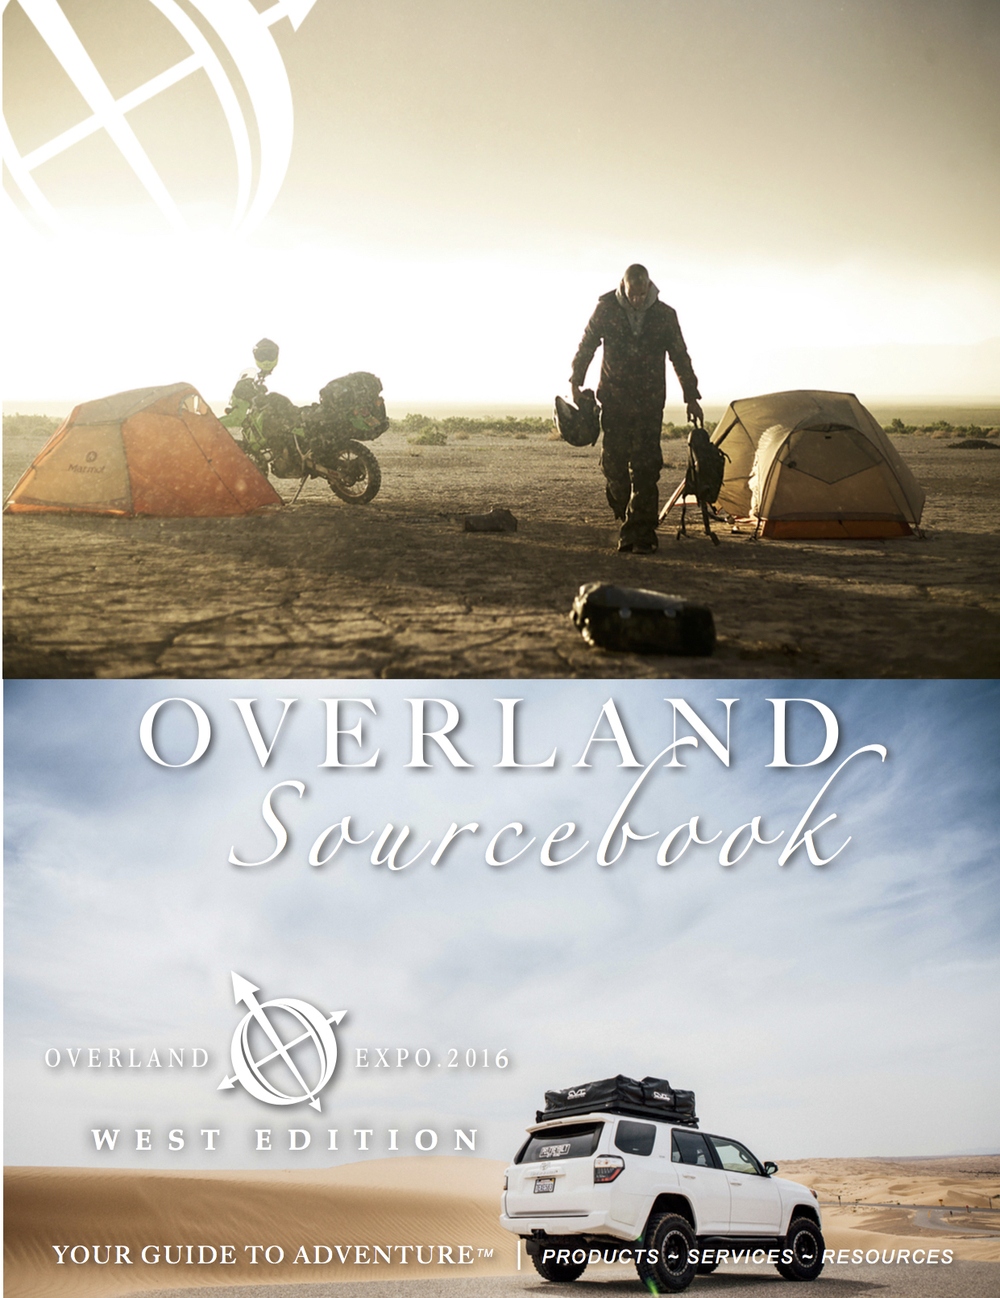 Download our 84-page   Overland Sourcebook ,  2016 WEST & 2015 EAST Editions